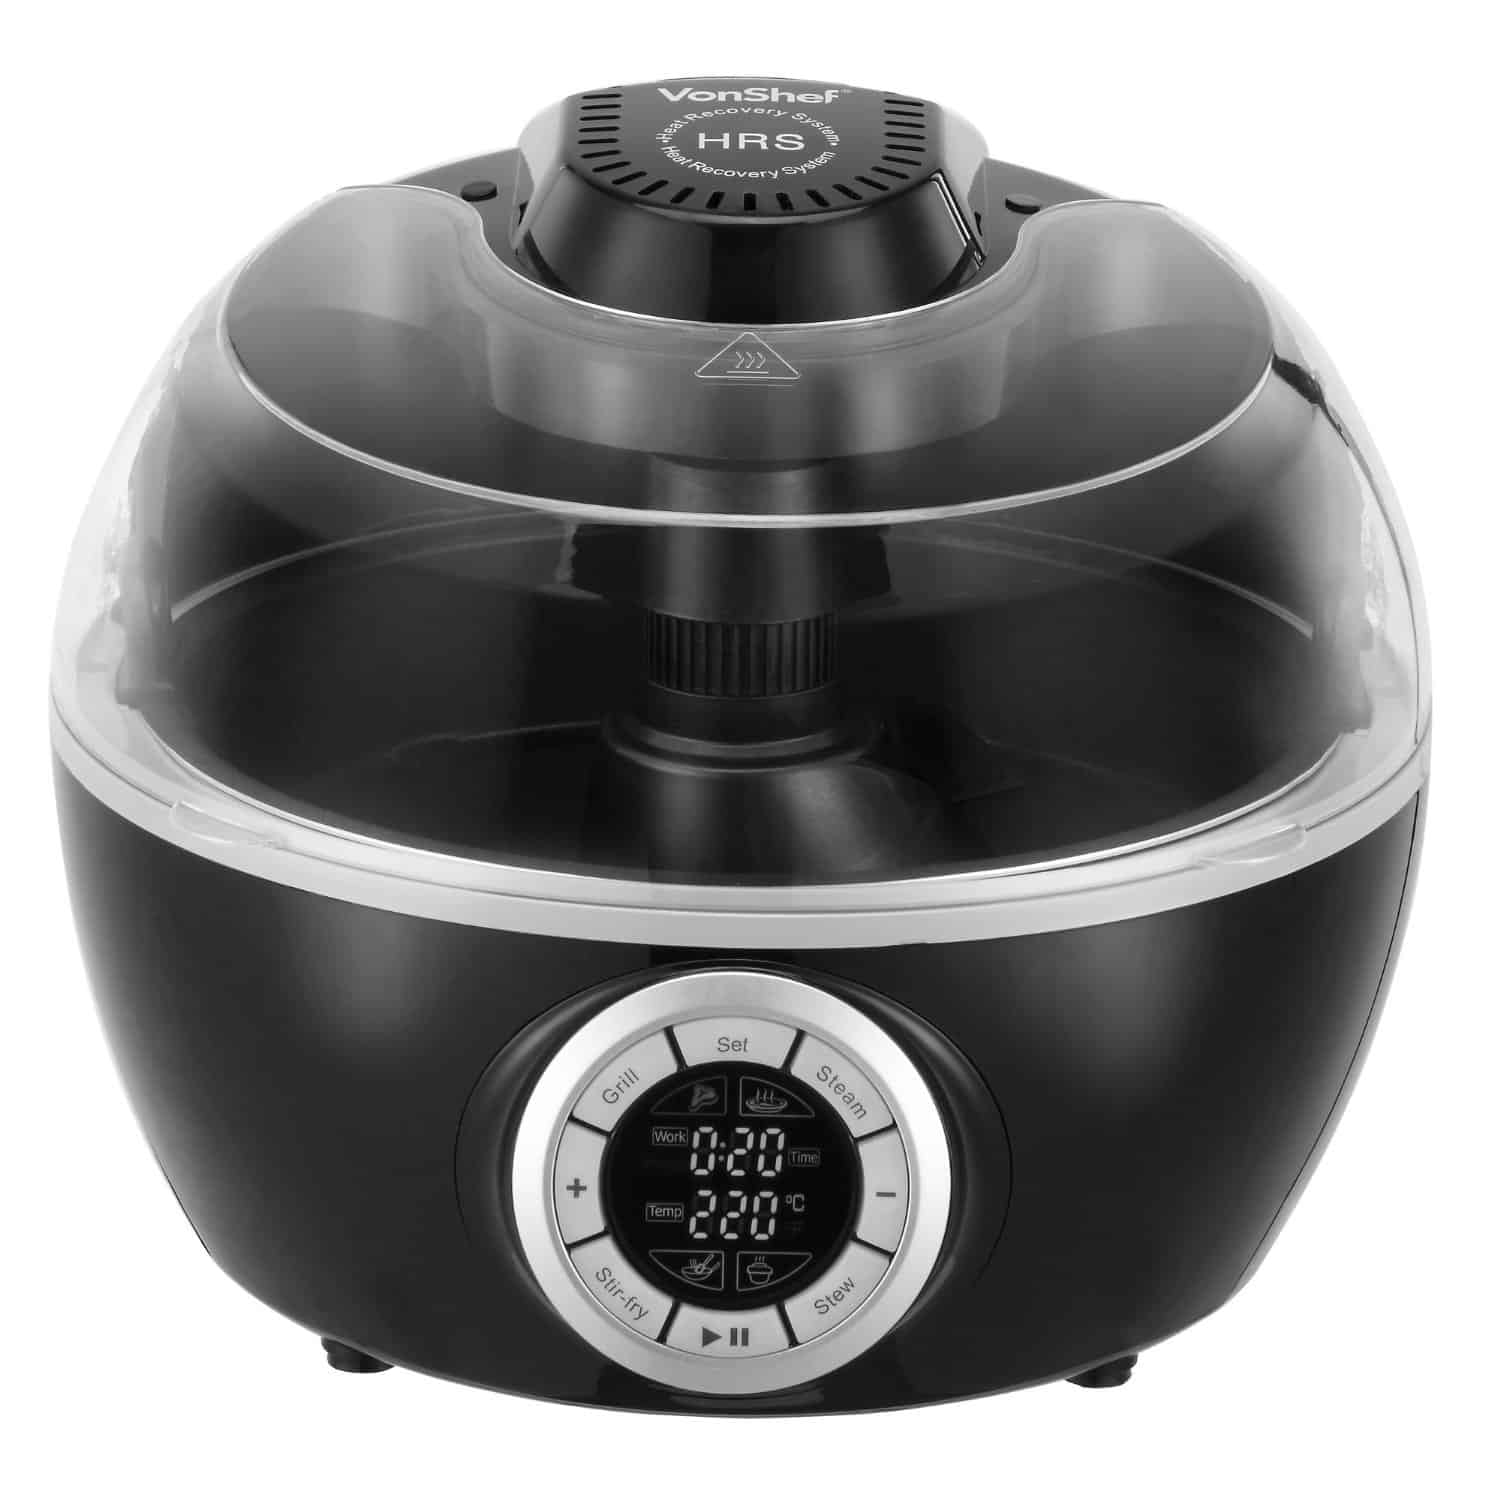 Vonshef Digital Multi Cooker Review